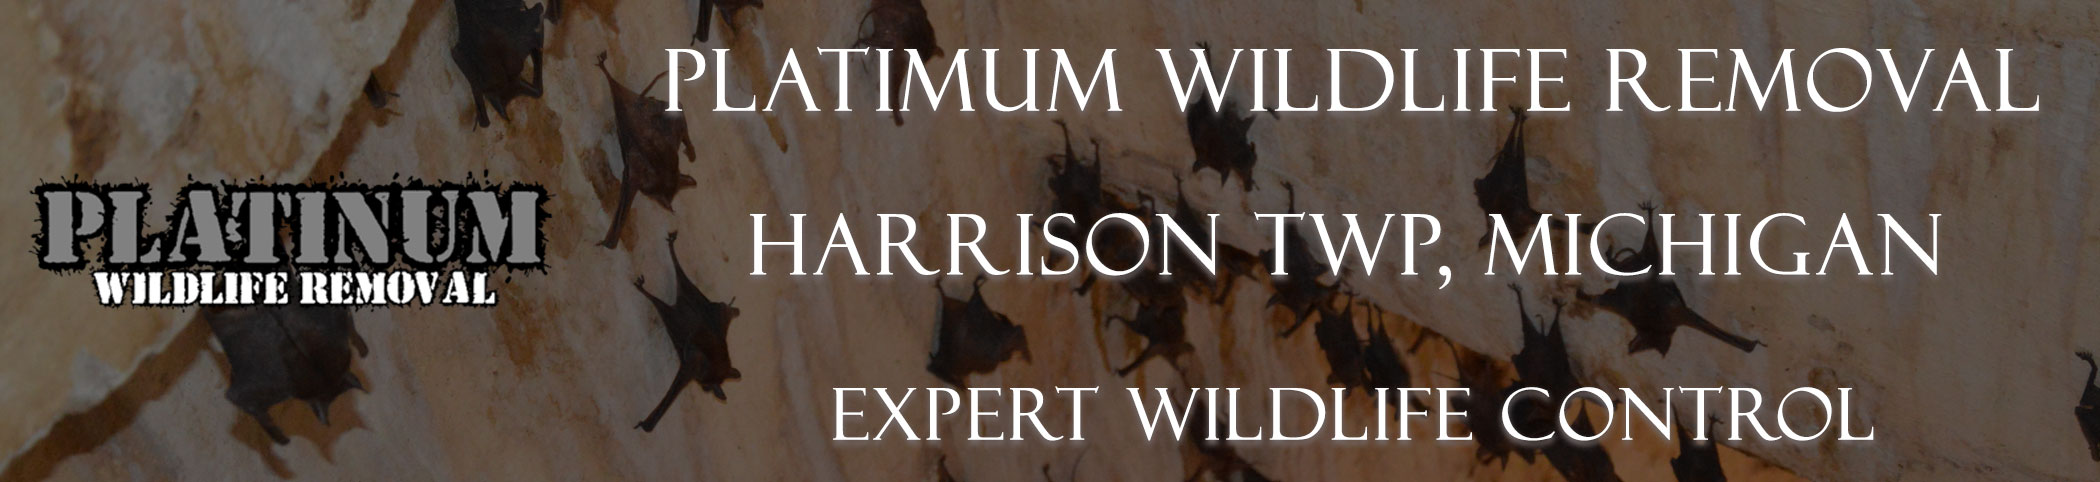 Harrison-TWP-Platinum-Wildlife-Removal-michgan